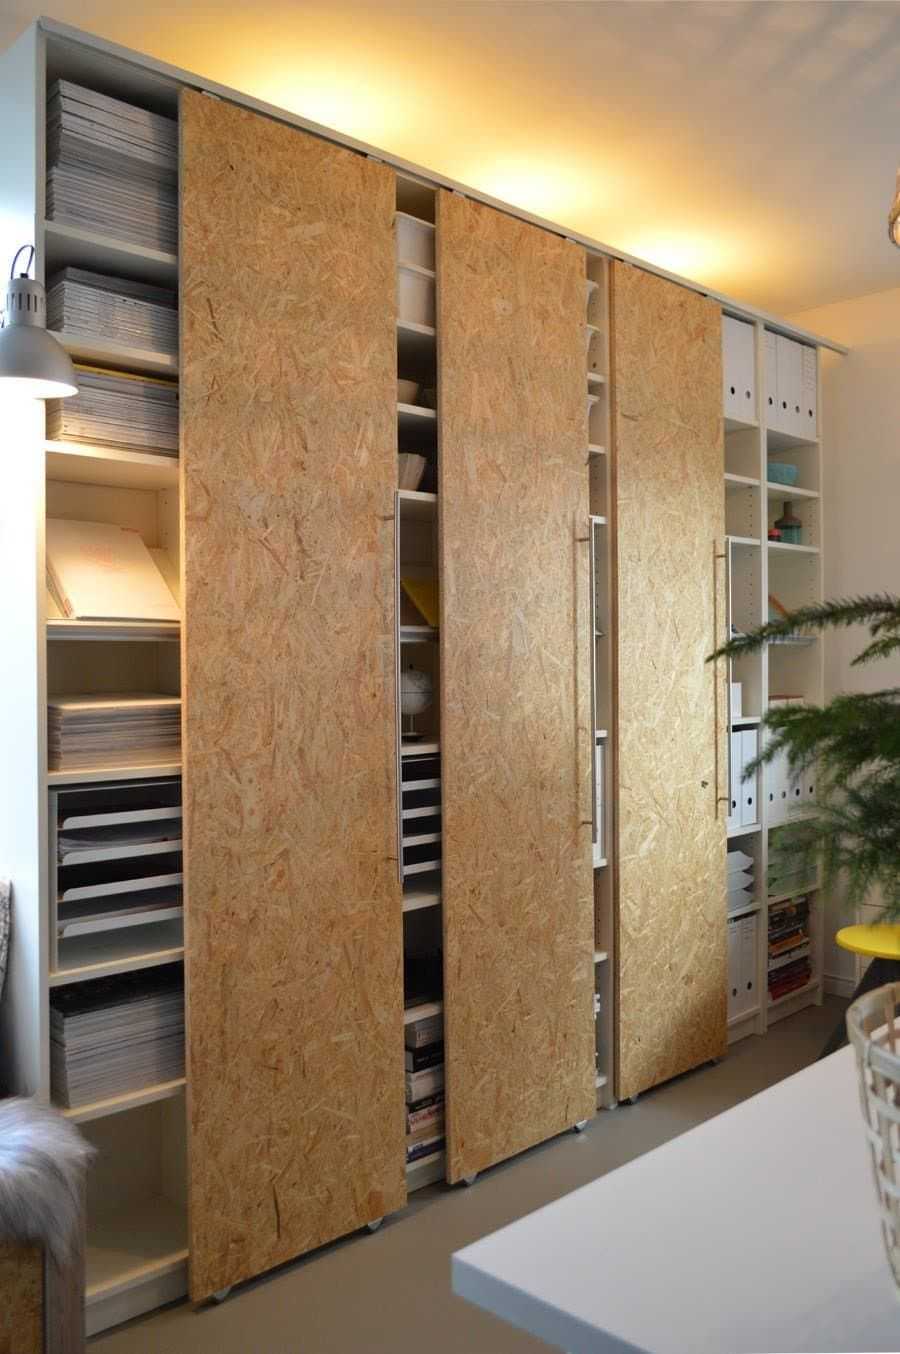 Ikea Regal Billy how to hack sliding doors for ikea billy bookcases ikea billy hack